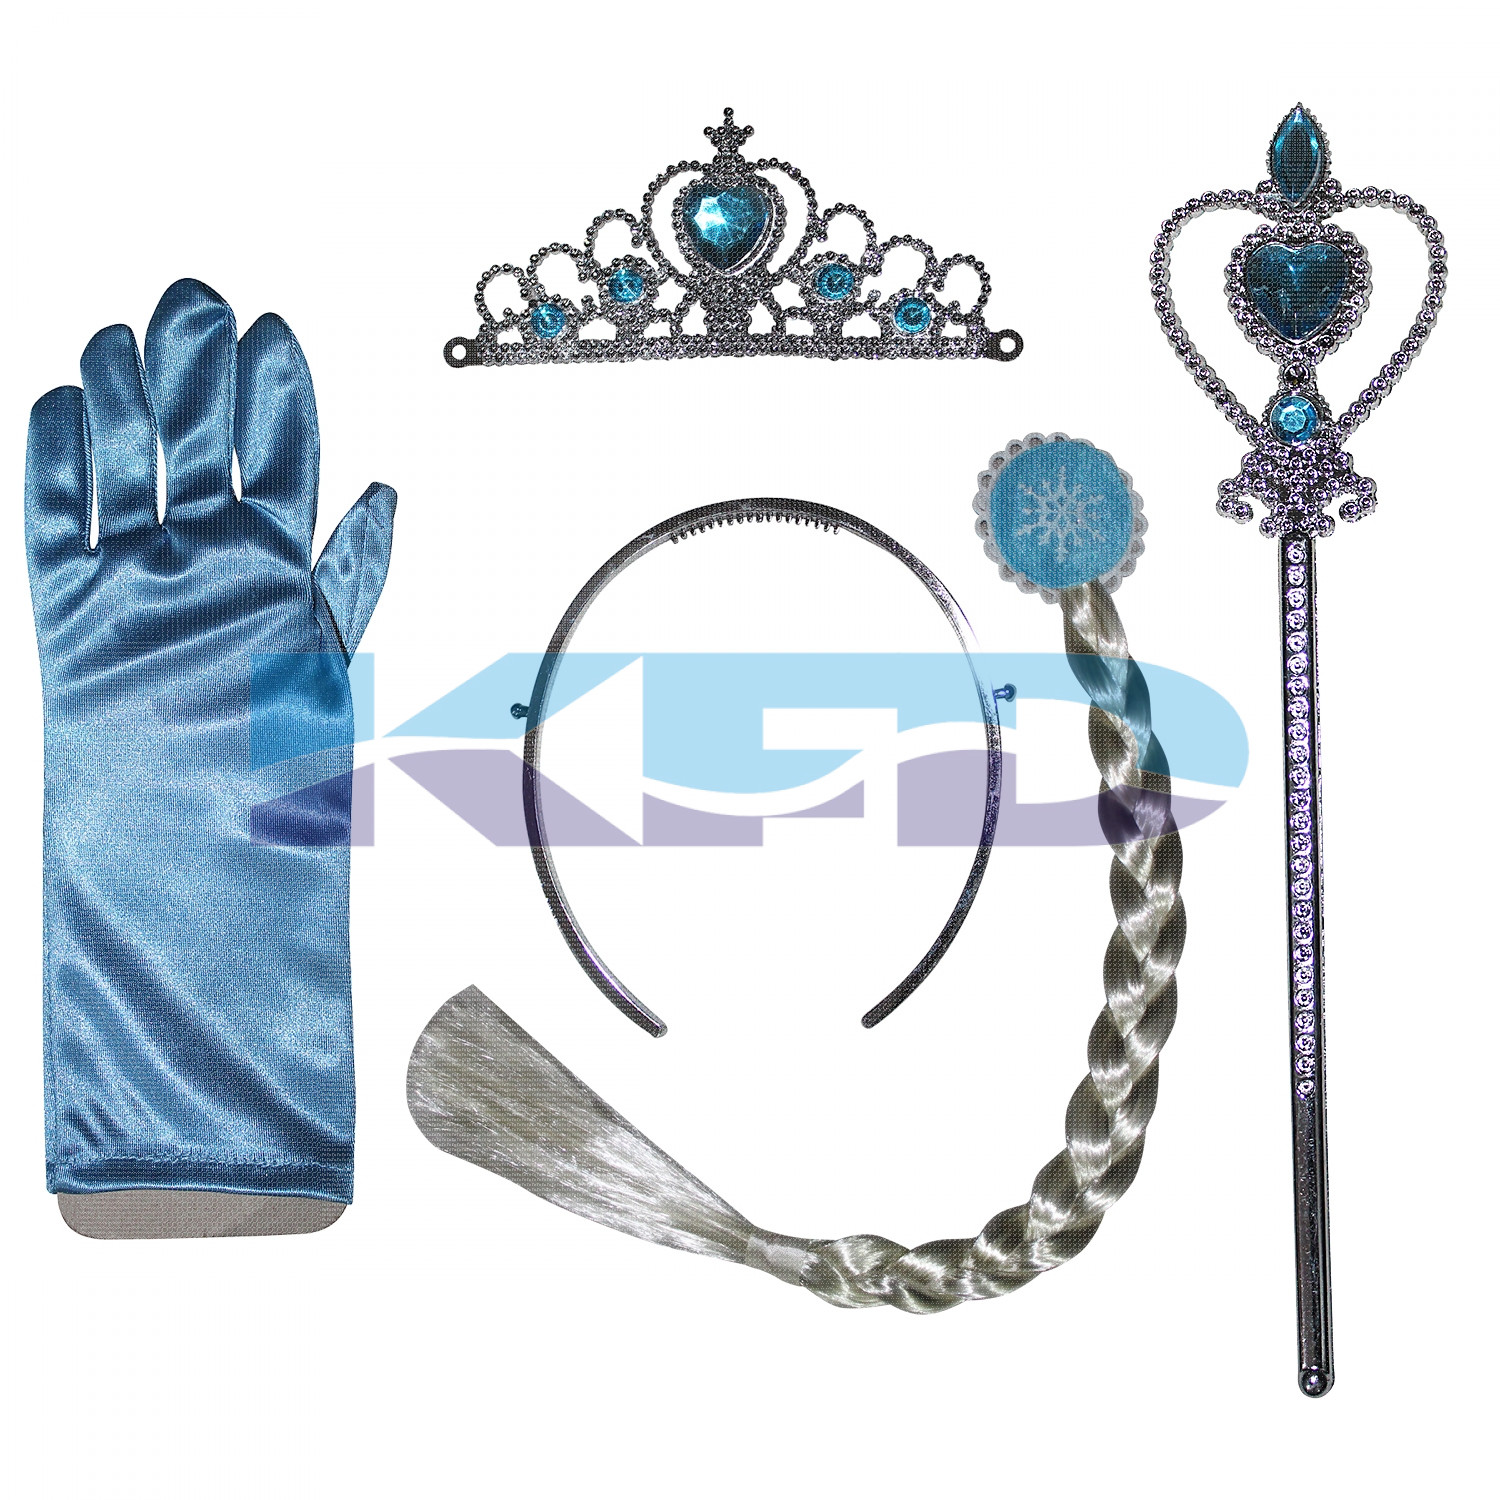 Princes Elsa Accessories With Gloves,western costume For School Annual function/Theme Party/Competition/Stage Shows/Birthday Party Dress